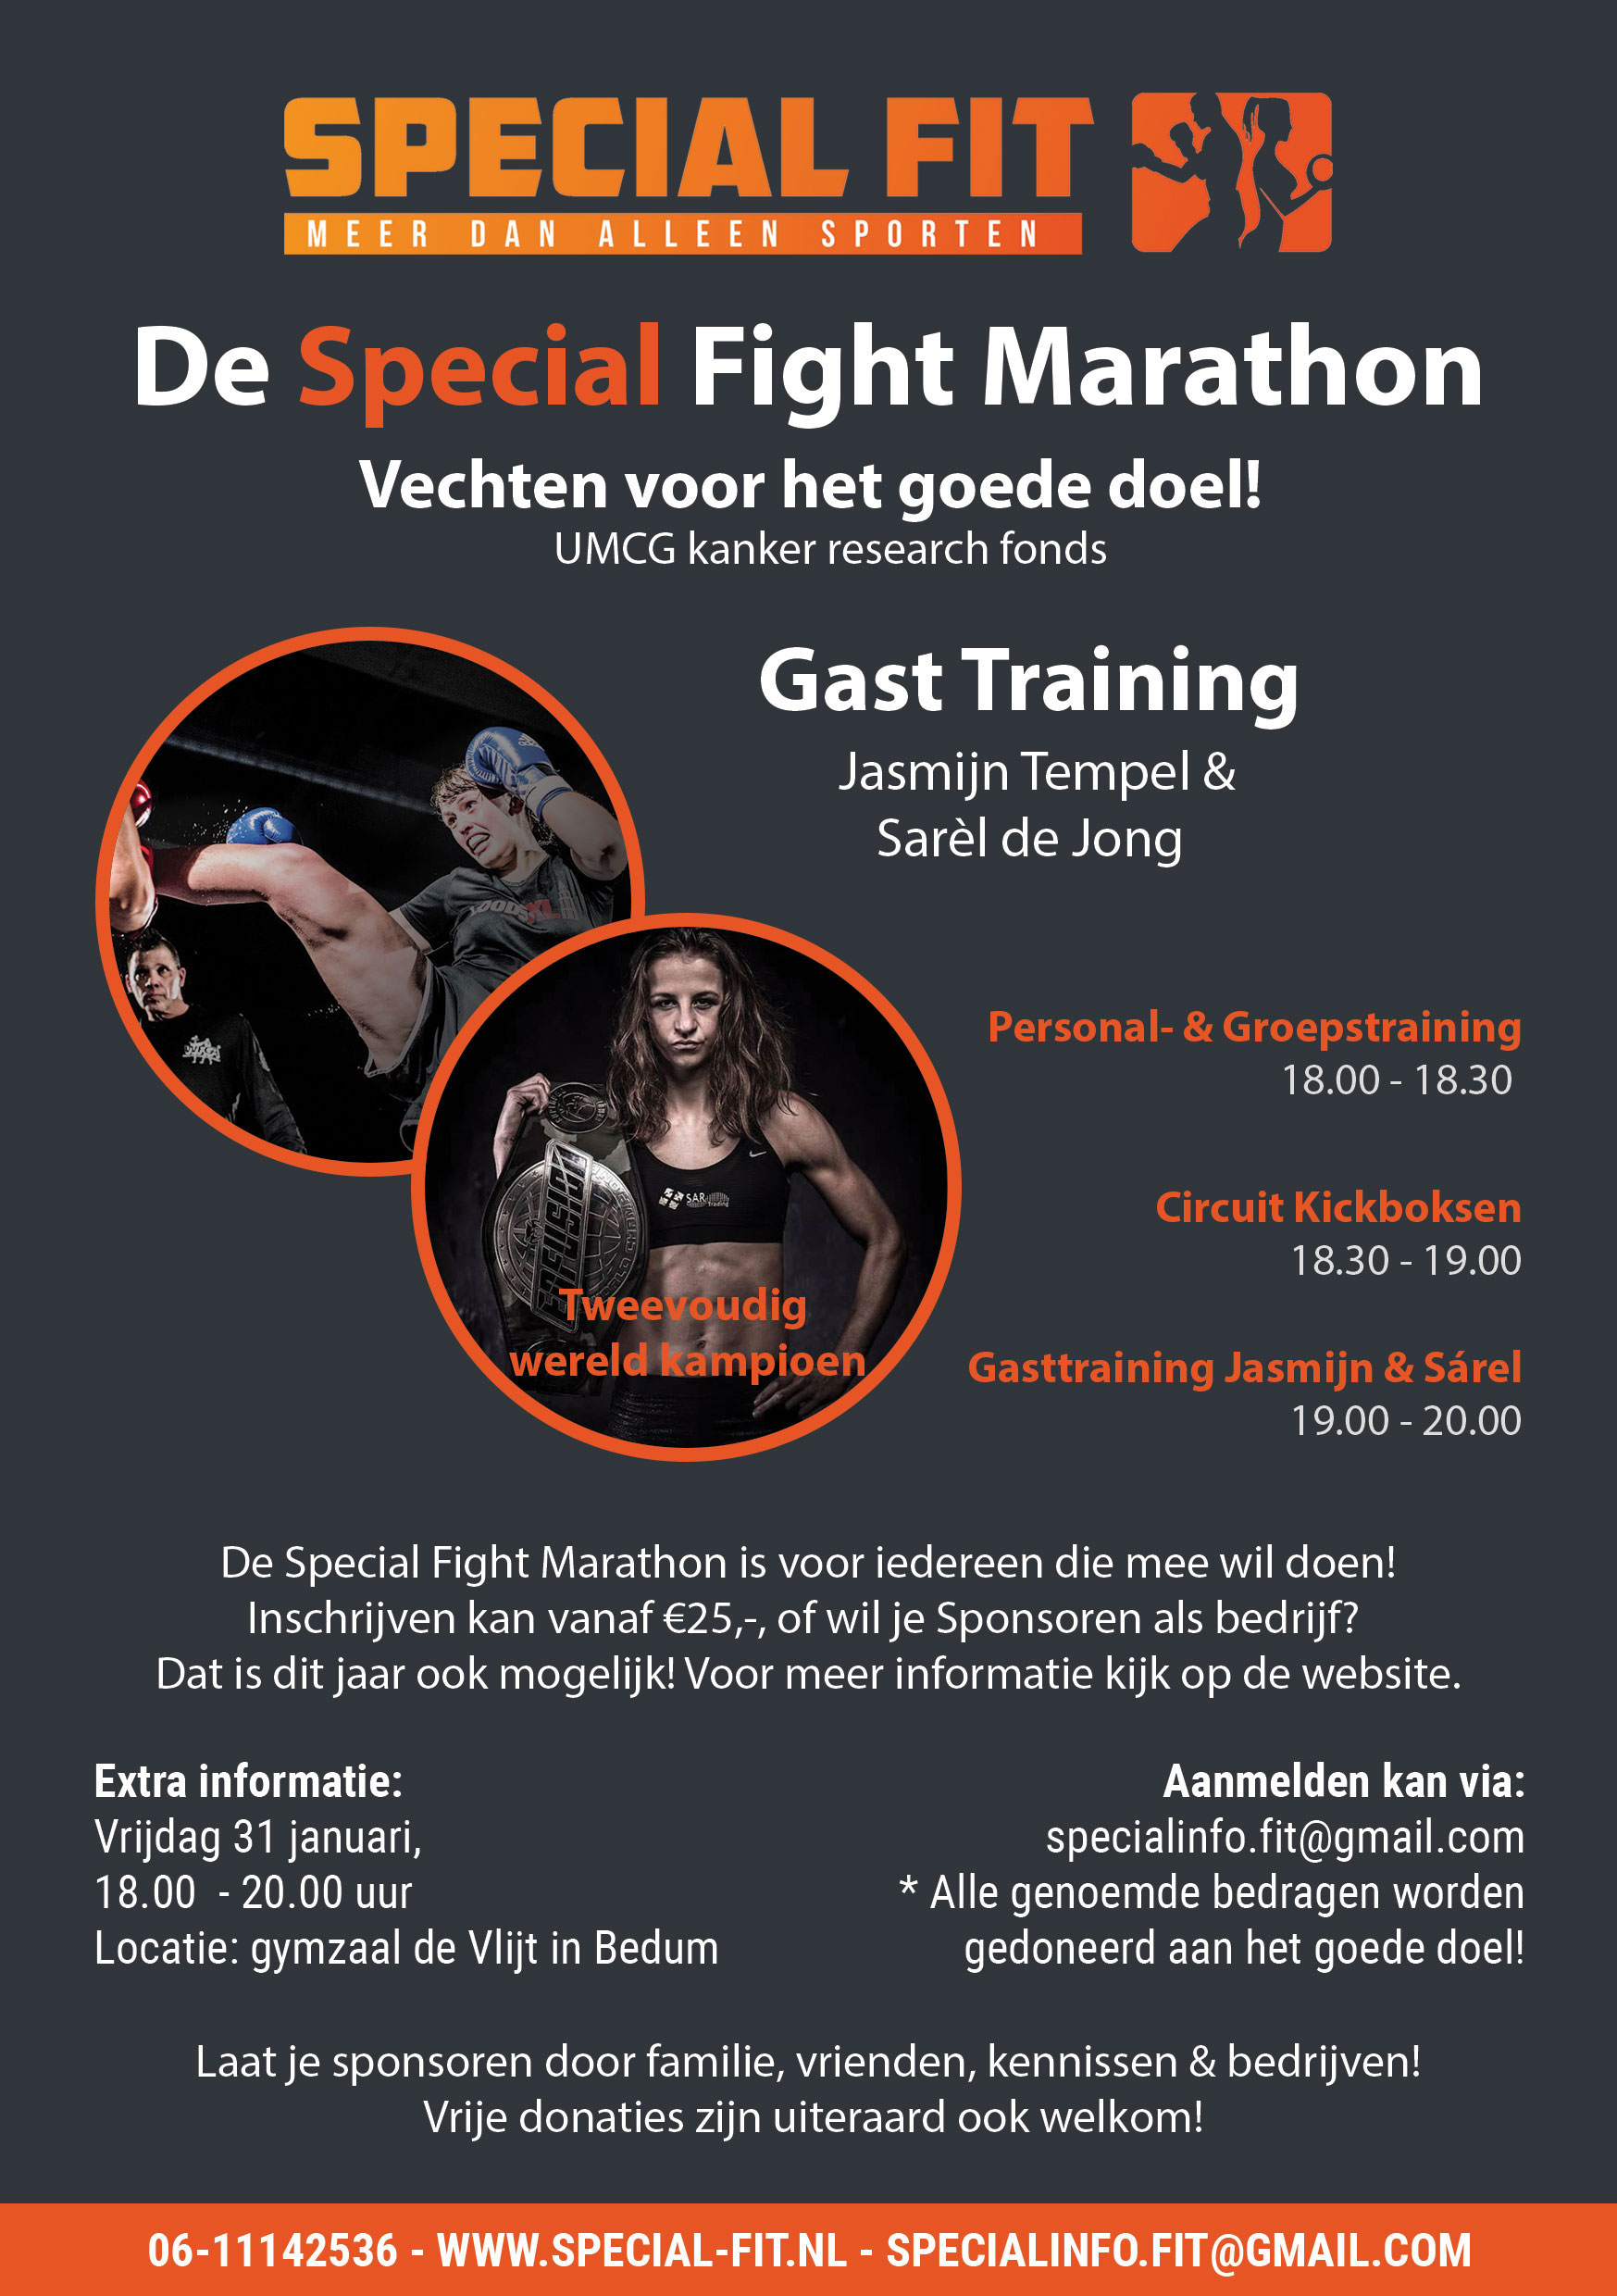 De Special Fight Marathon